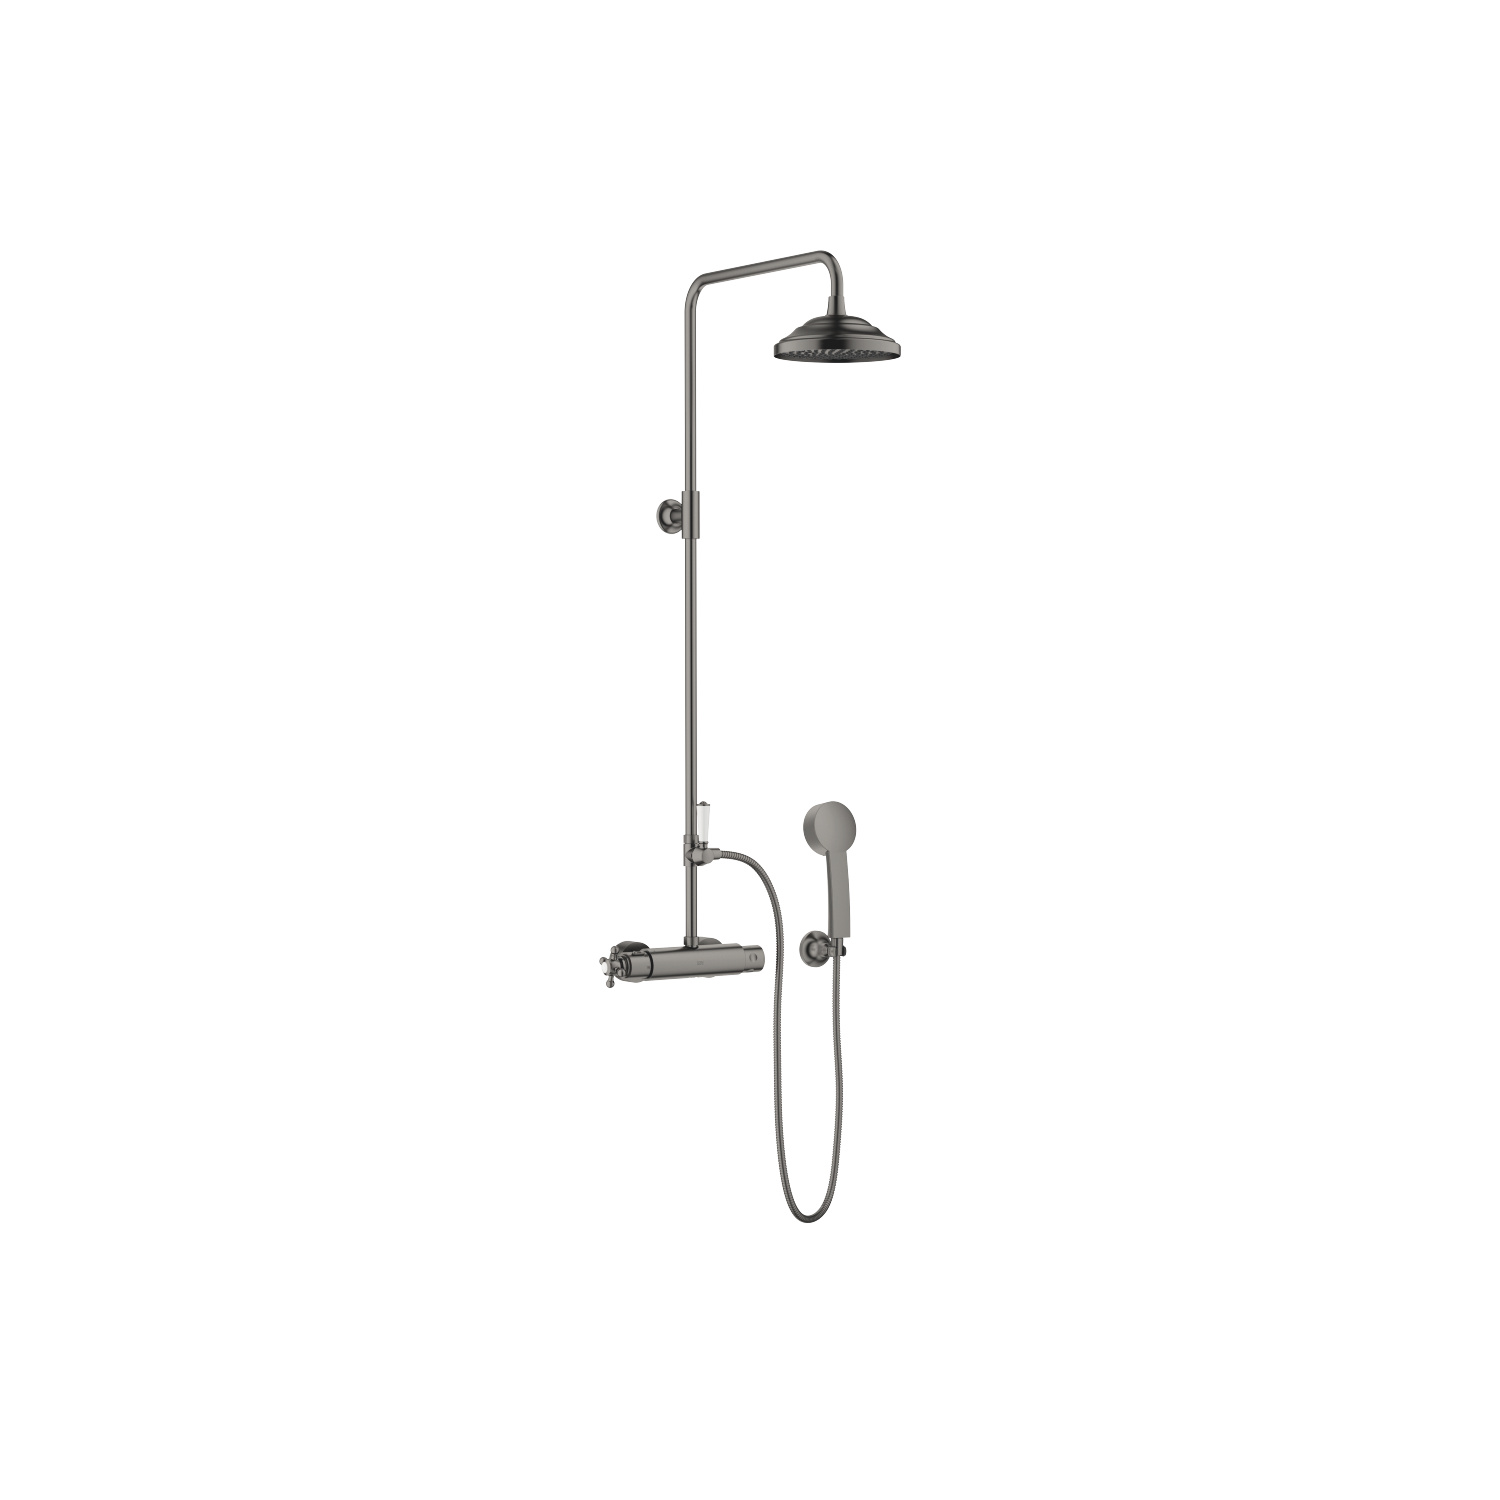 Shower thermostat for wall mounting with fixed and hand shower - Dark Platinum matt - 34 455 970-99 + 11 420 360-99